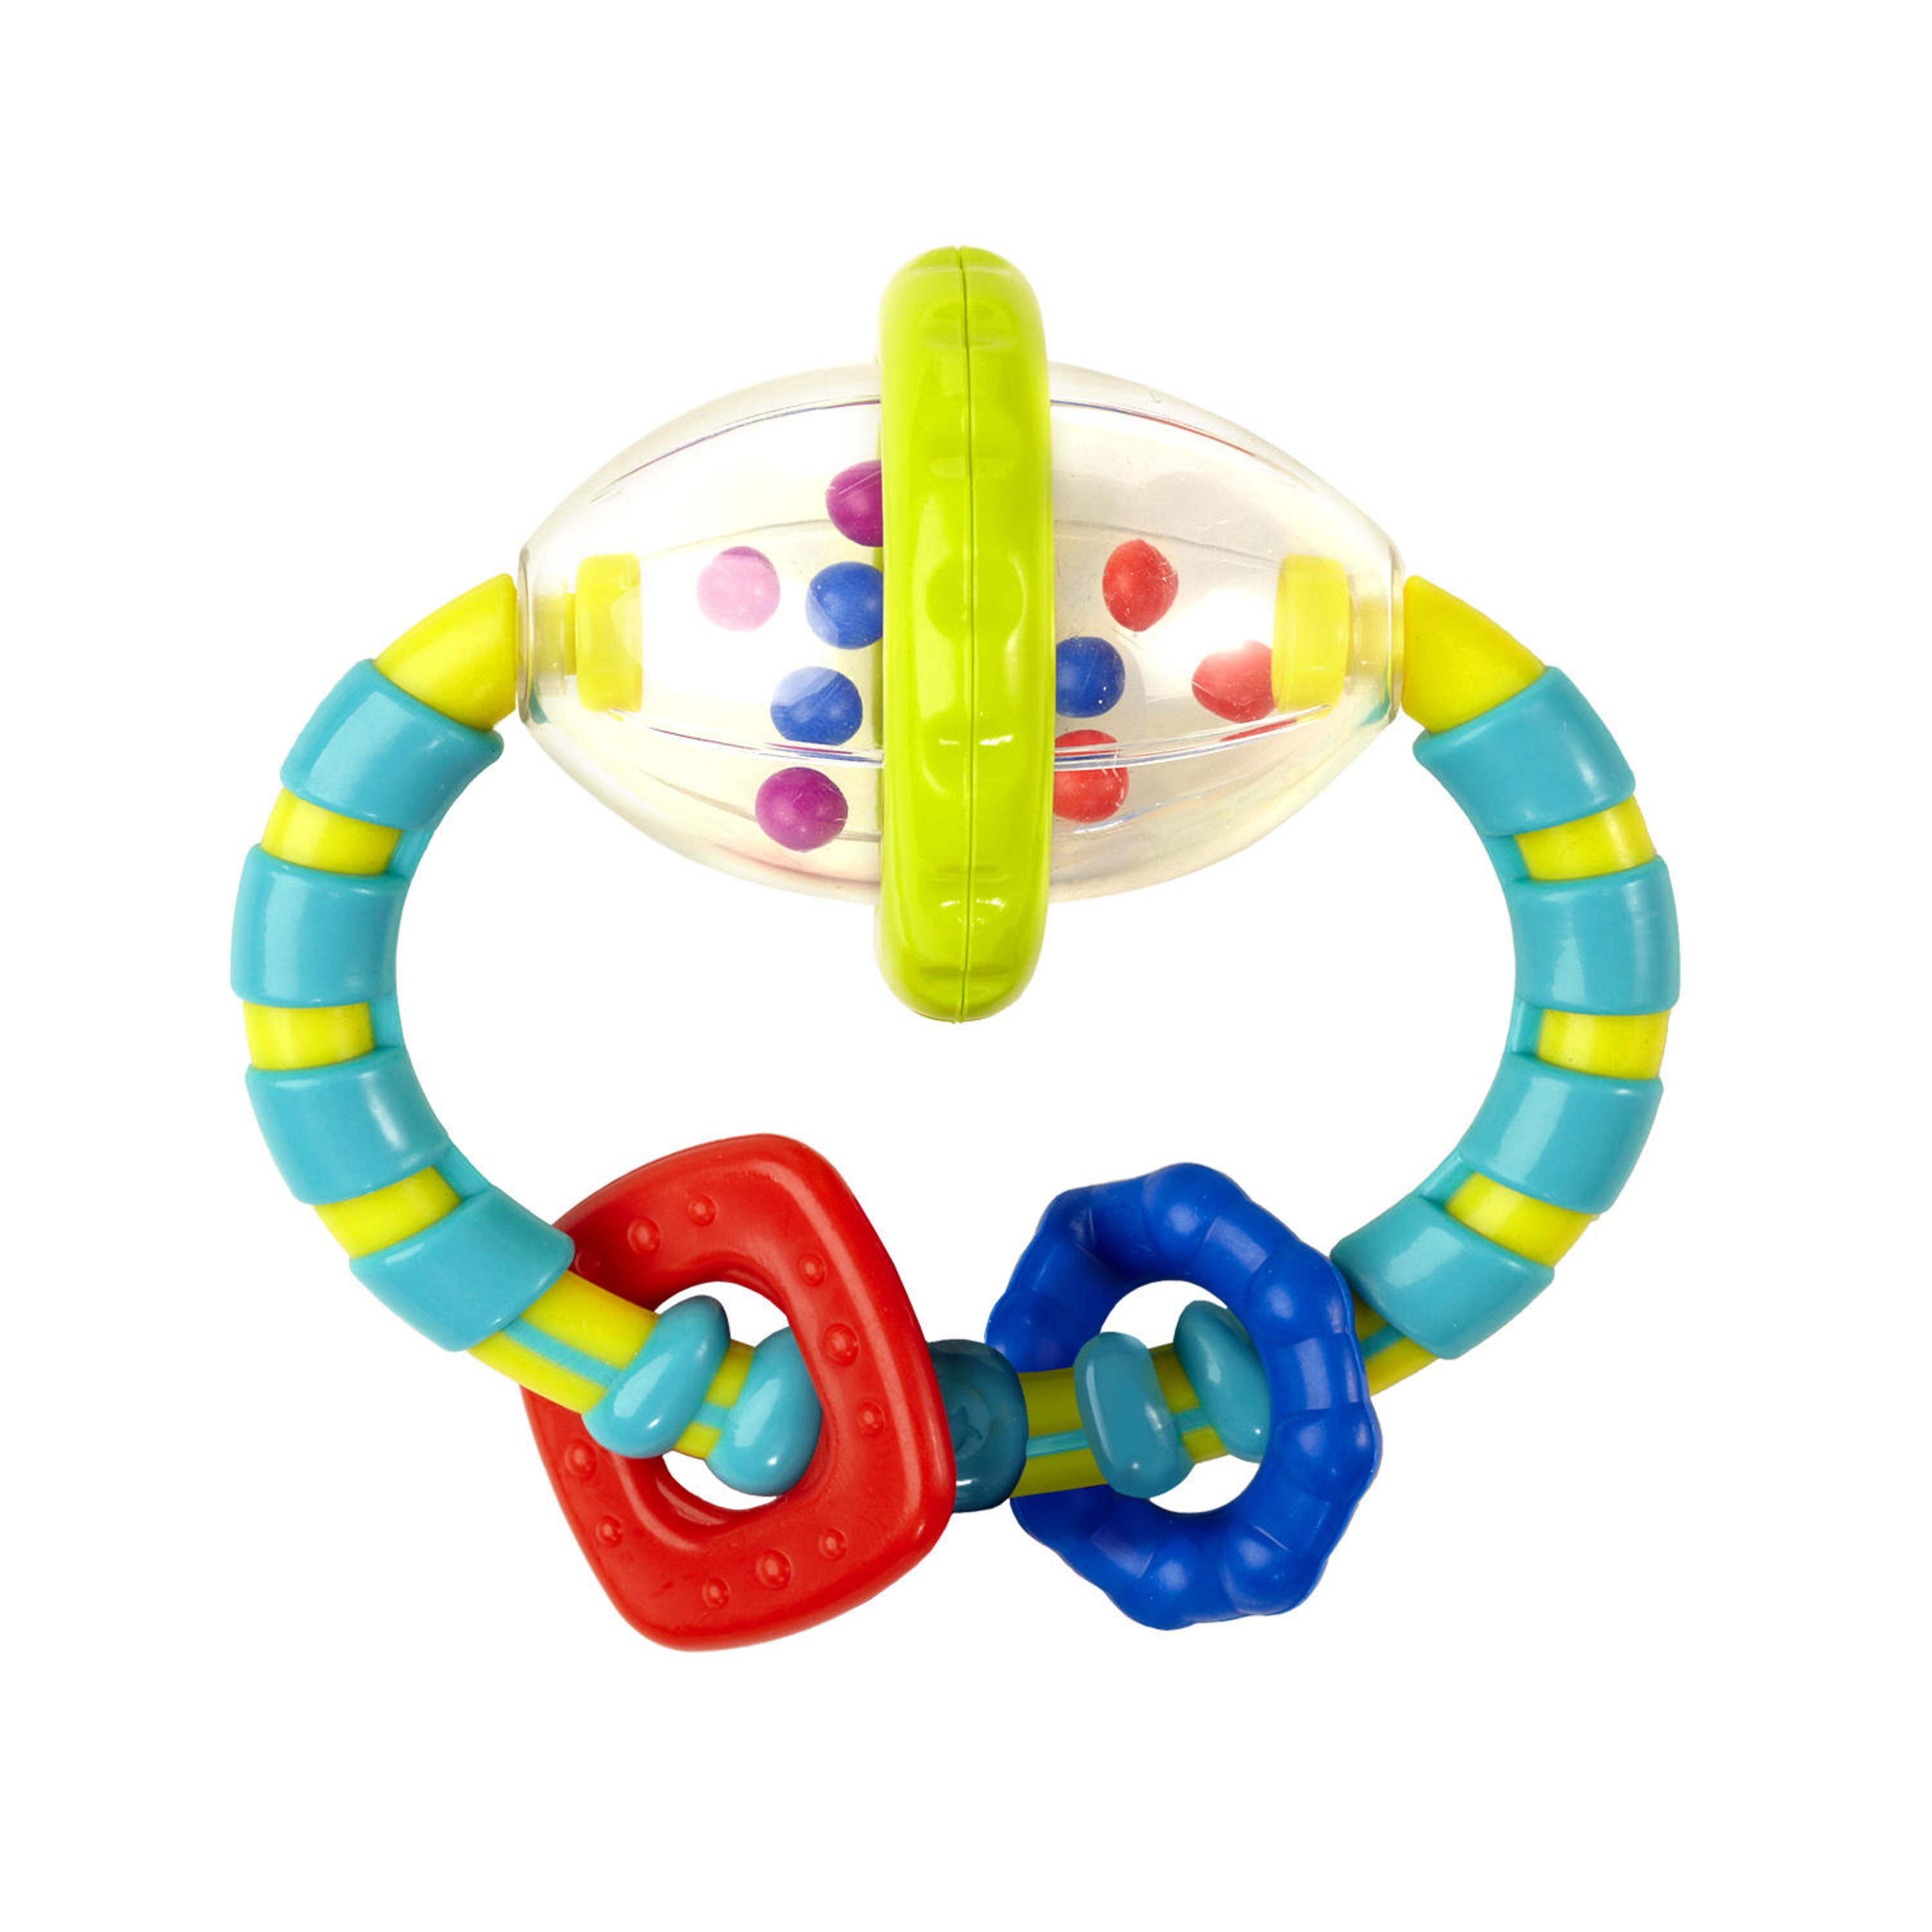 Bright Starts Grab & Spin Rattle Toy